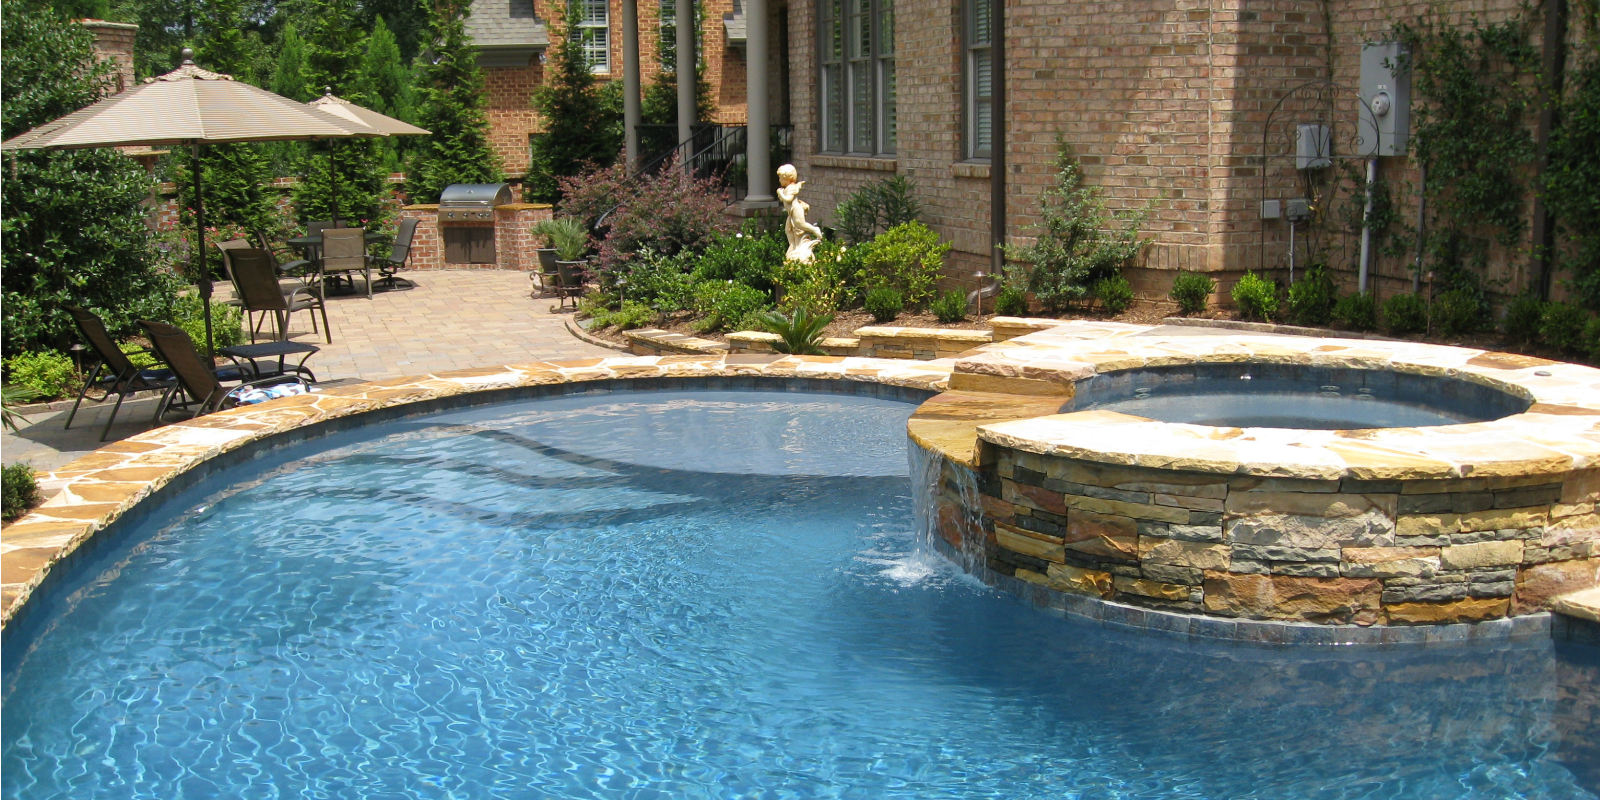 Home backyard oasis pools high quality pool installation for Quality pool design